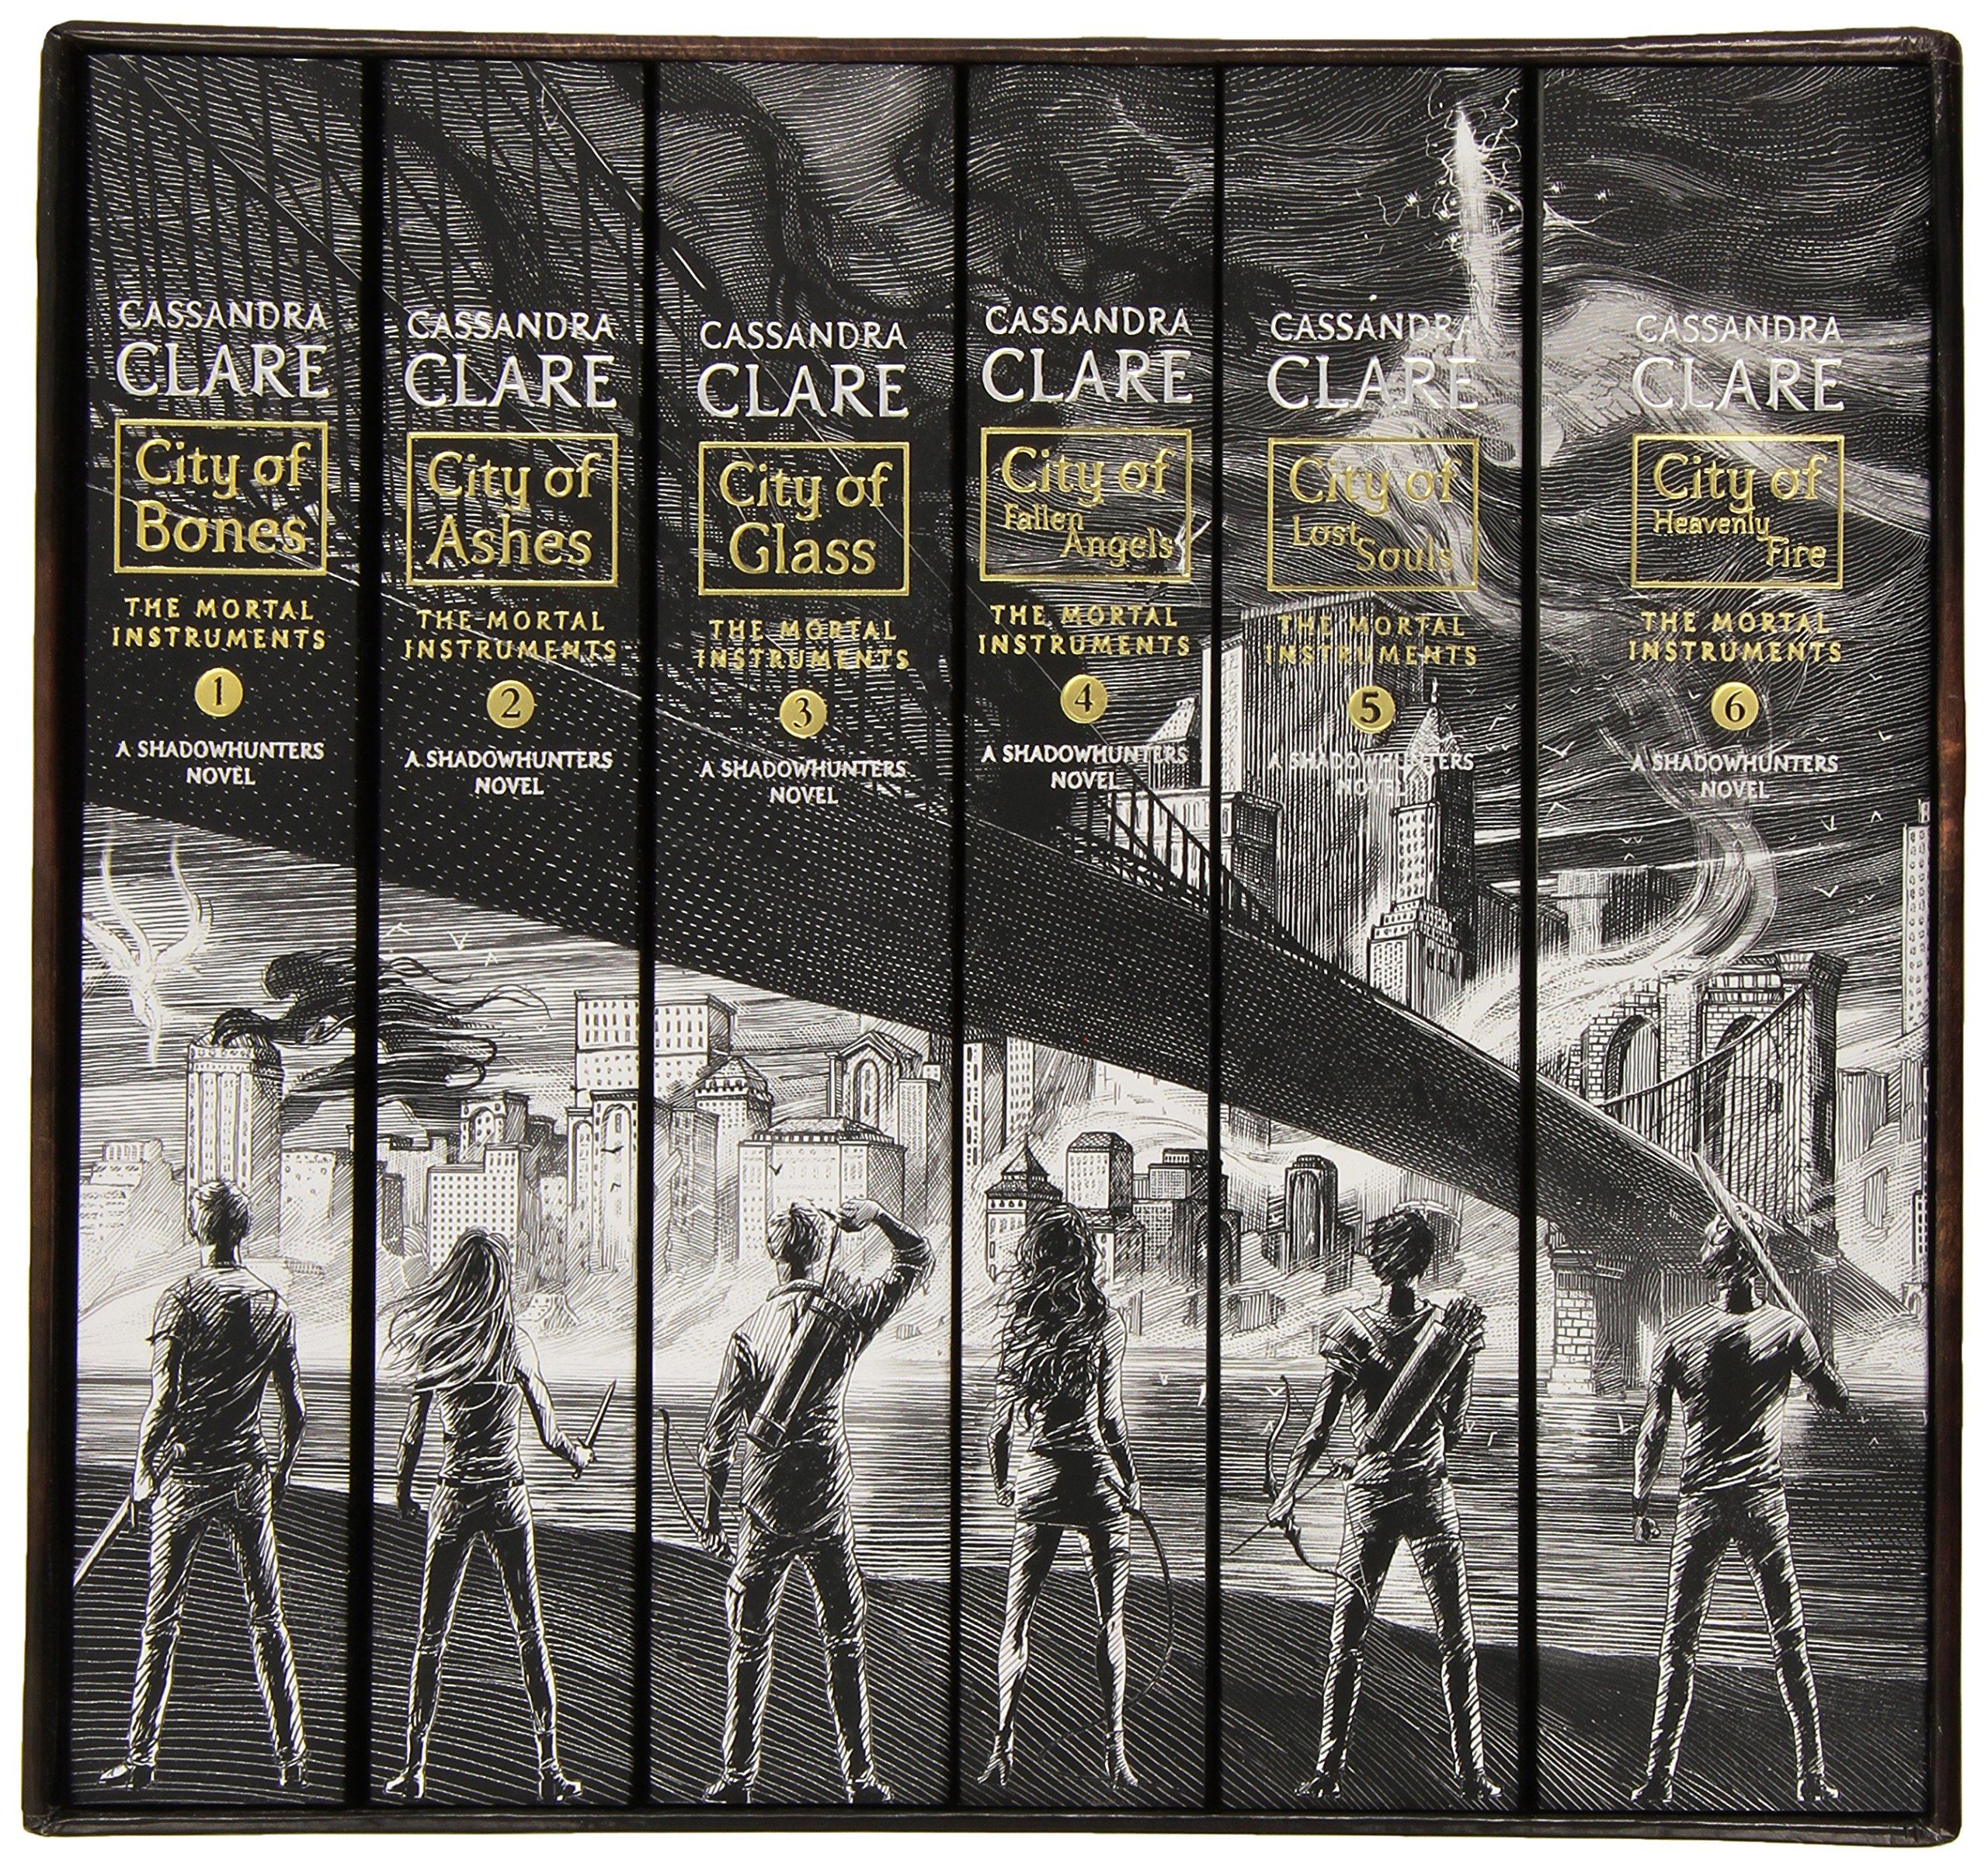 The Mortal Instruments, the Complete Collection(City of Bones/ City of Ashes/ City of Glass/ City of Fallen Angels/ City of Lost Souls/ City of Heavenly Fire) by Margaret K. McElderry Books